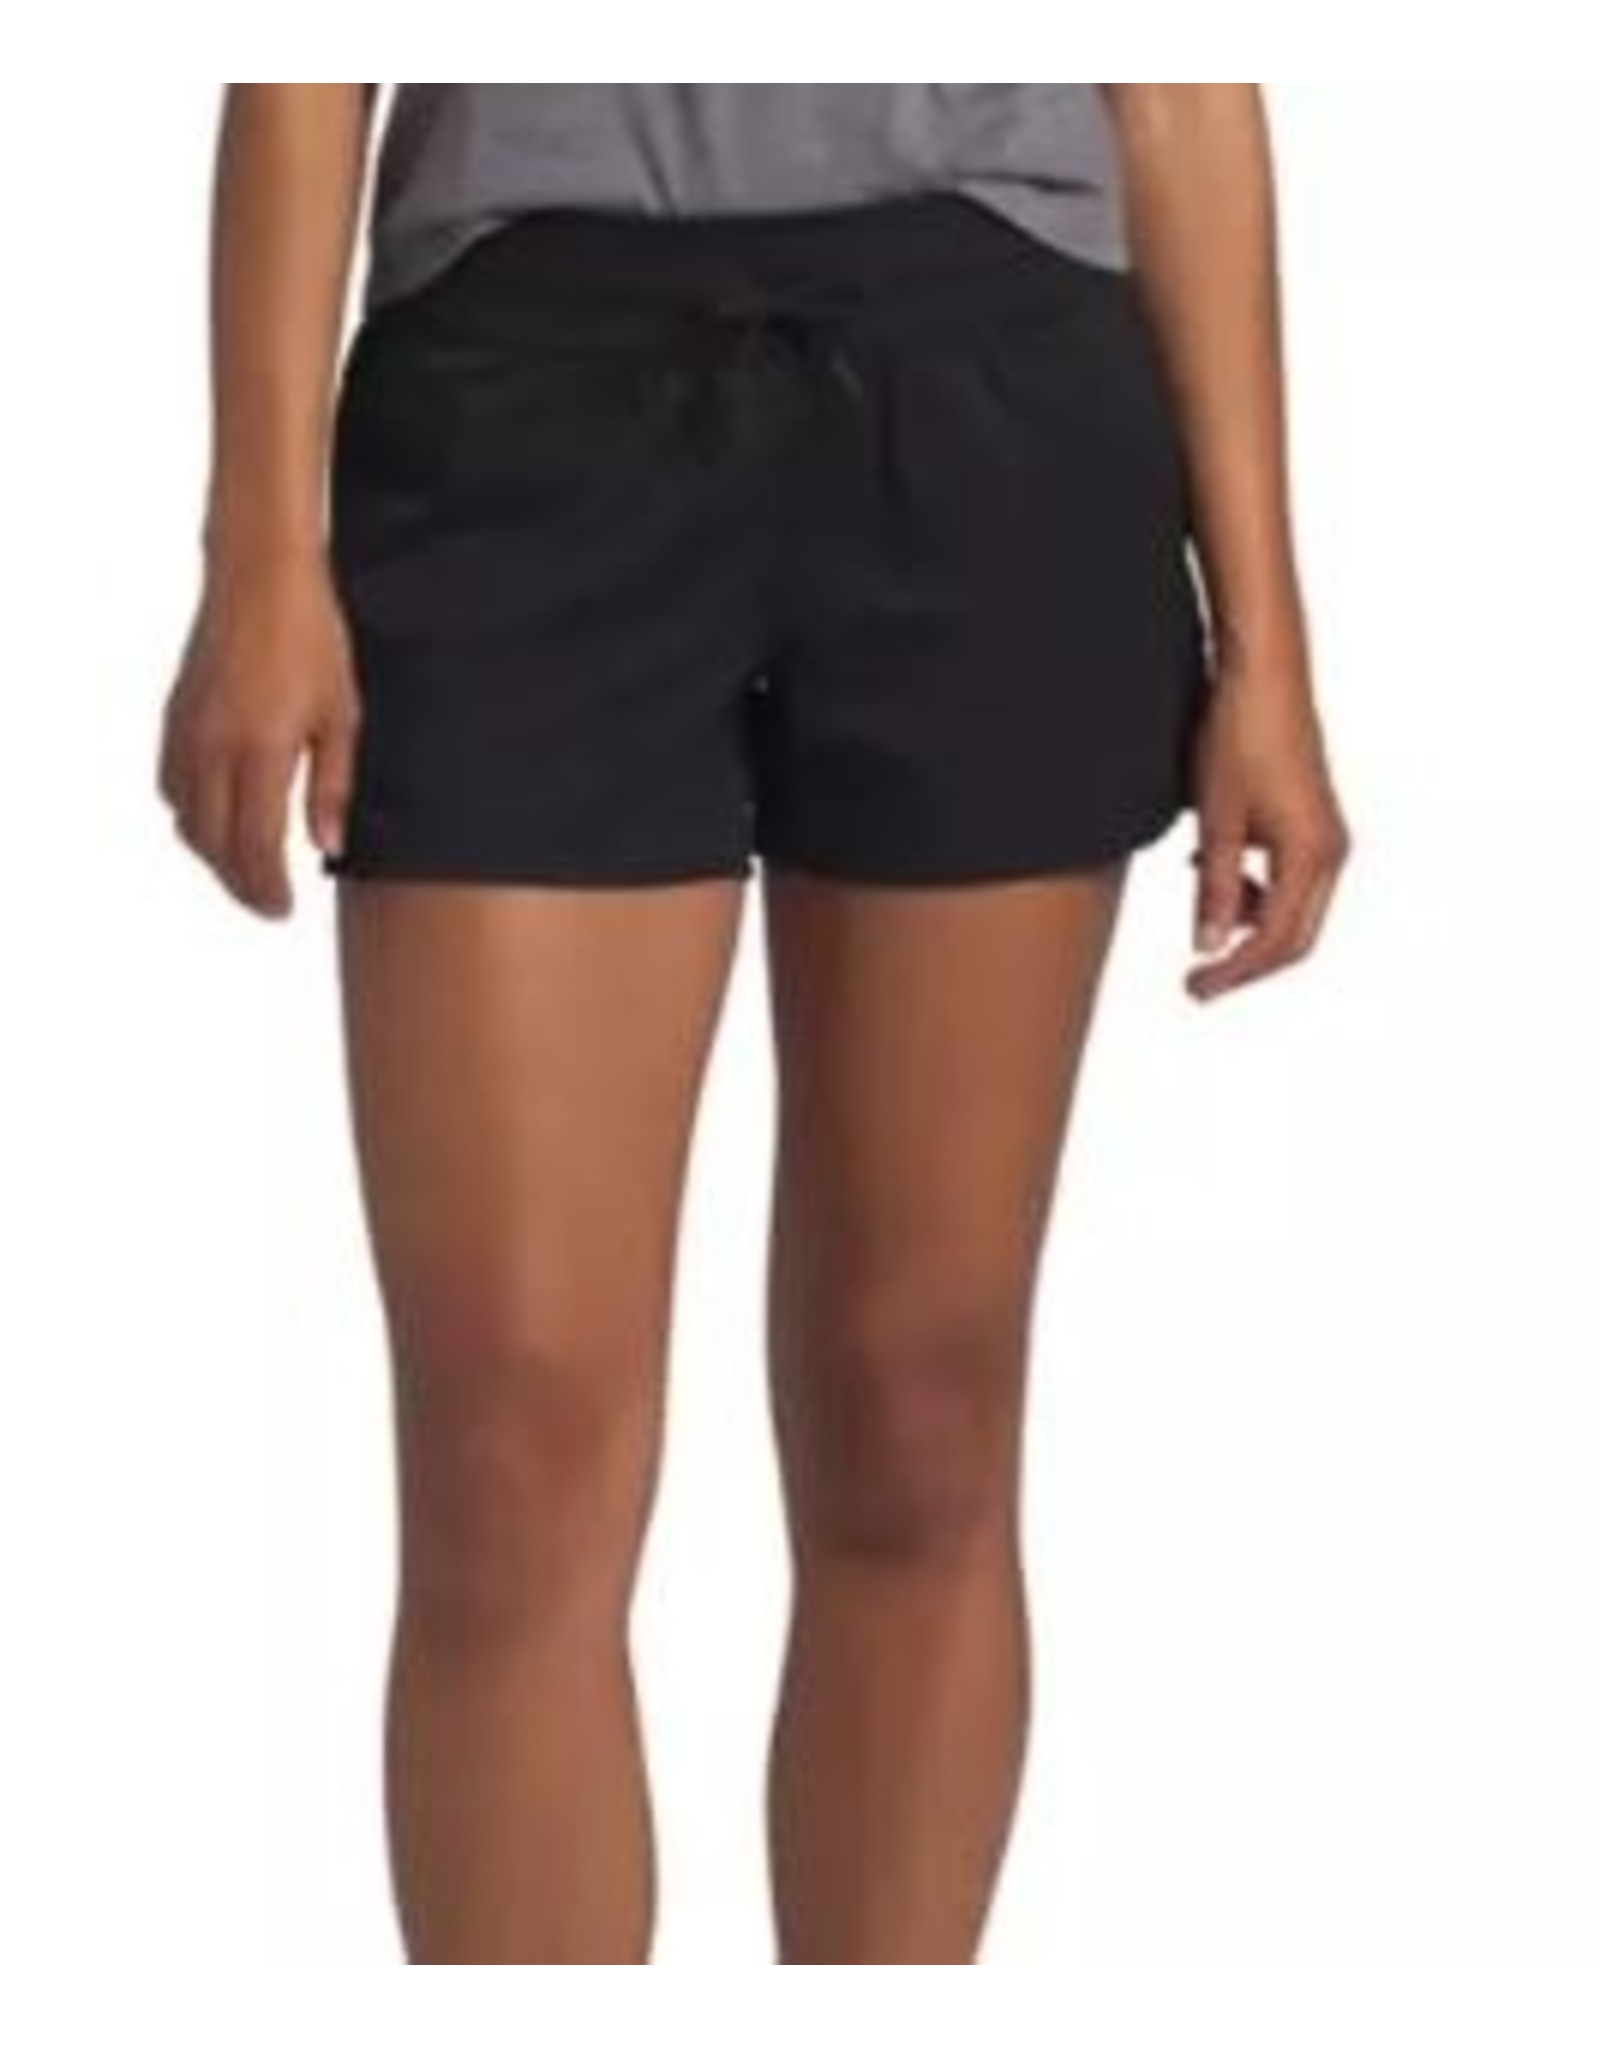 The North Face Women's Mountain Short - ps 20